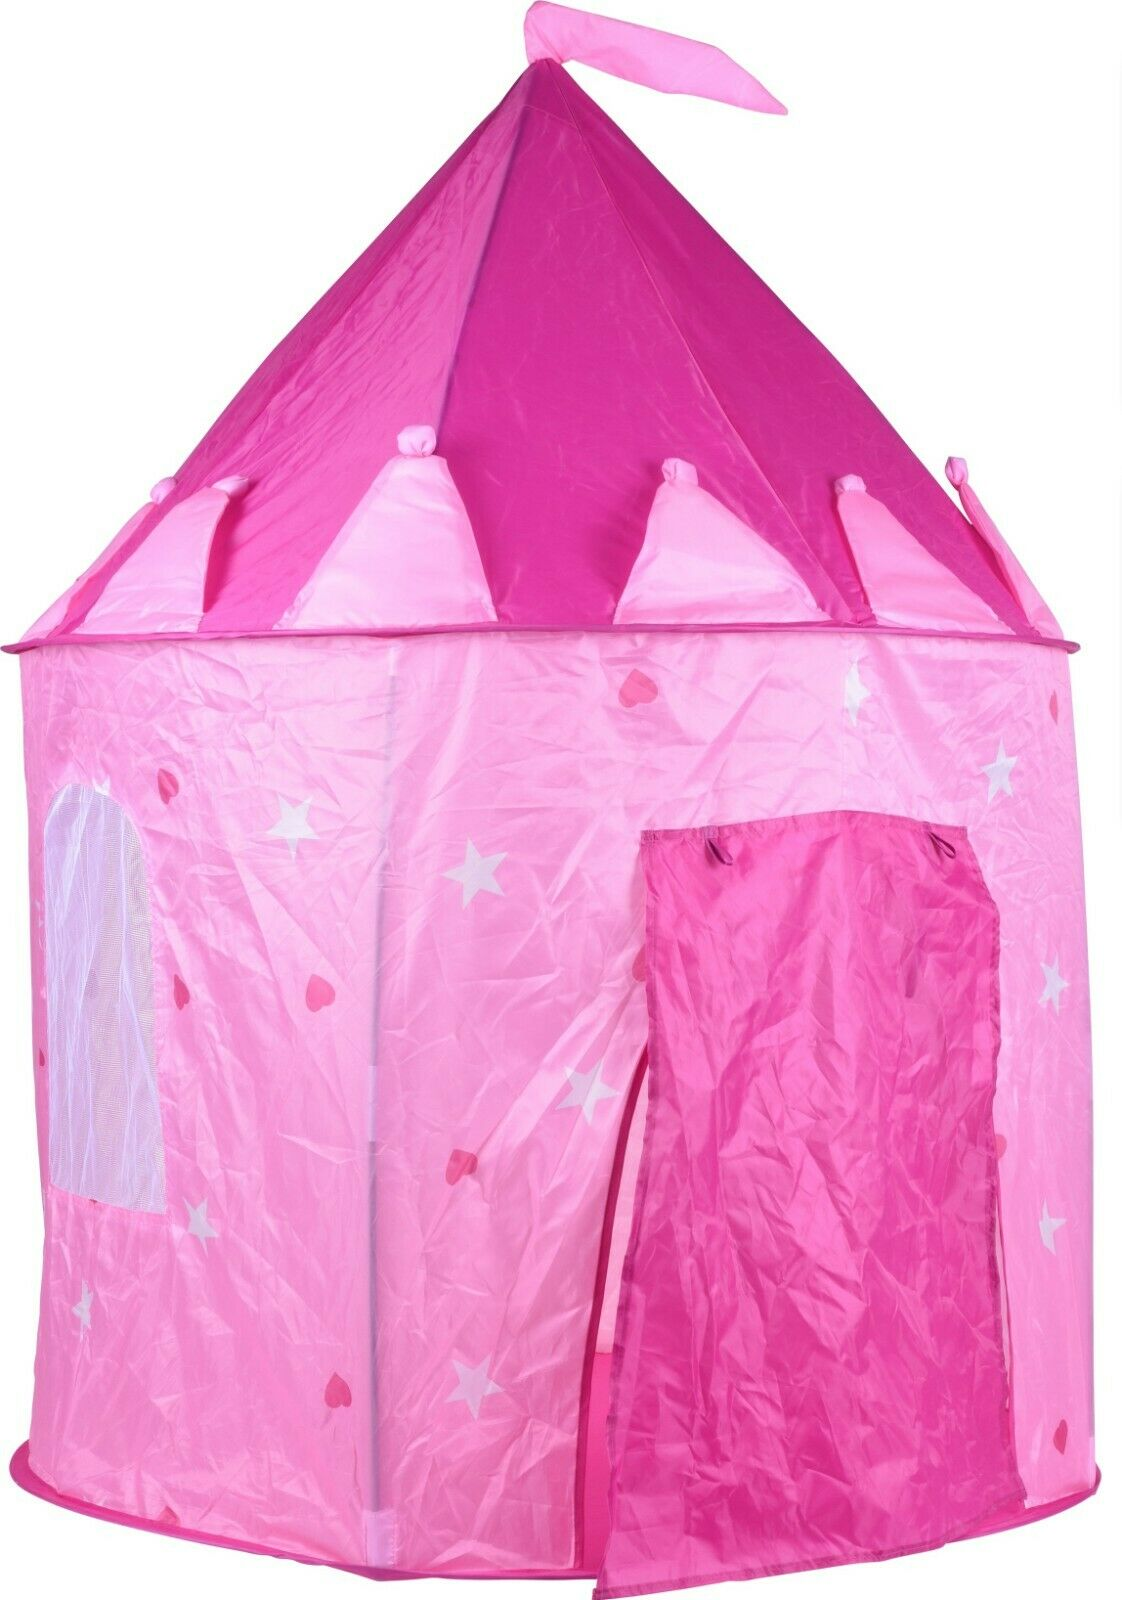 Castle Play Tent for Children Girls Indoor Play House Castle Tent Pink princess